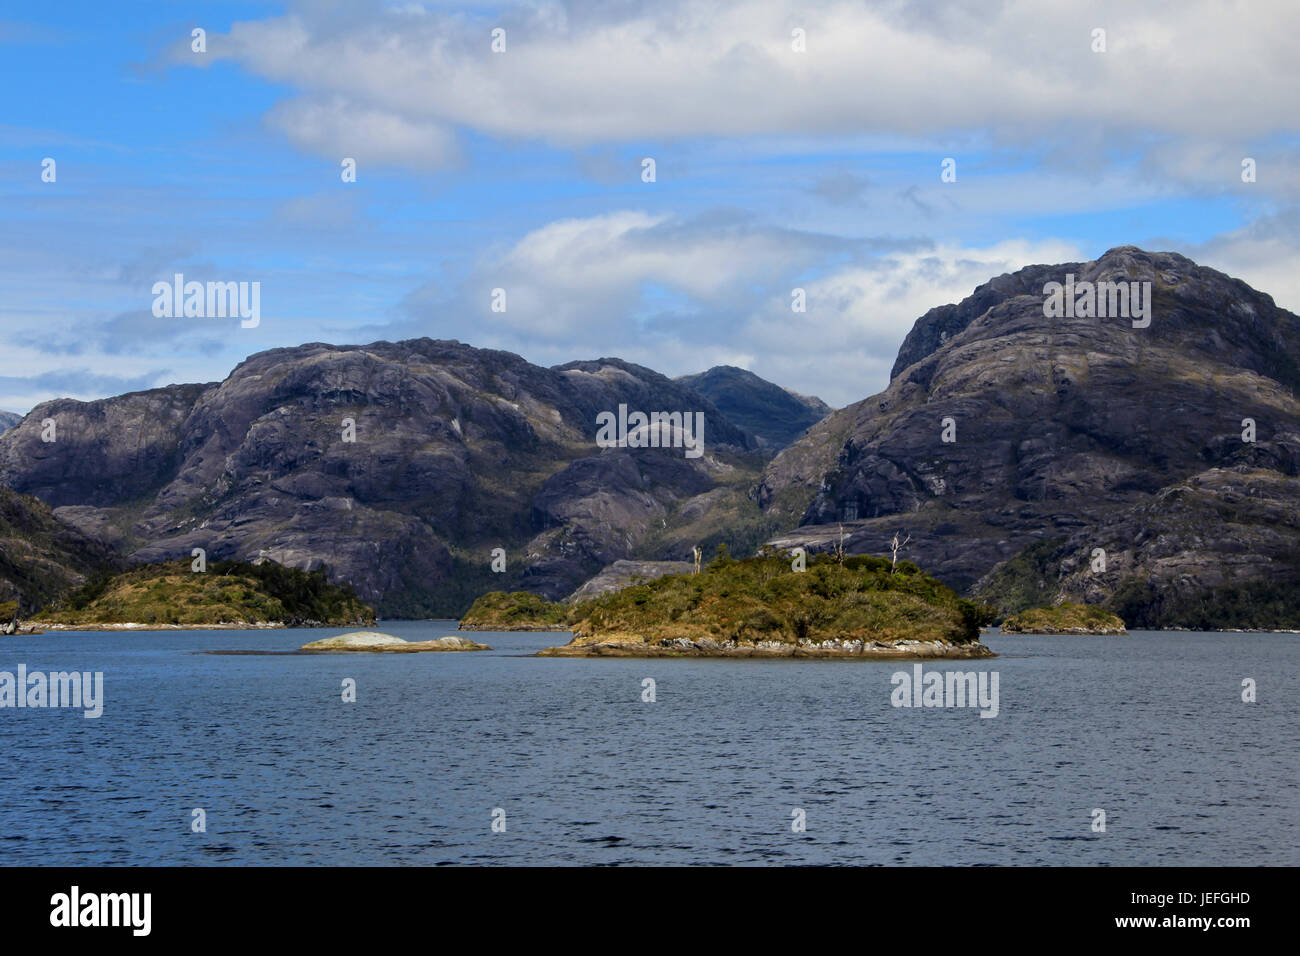 Beautiful fiord with mountains in the Bernardo O'Higgins National Park, Chile, South America - Stock Image